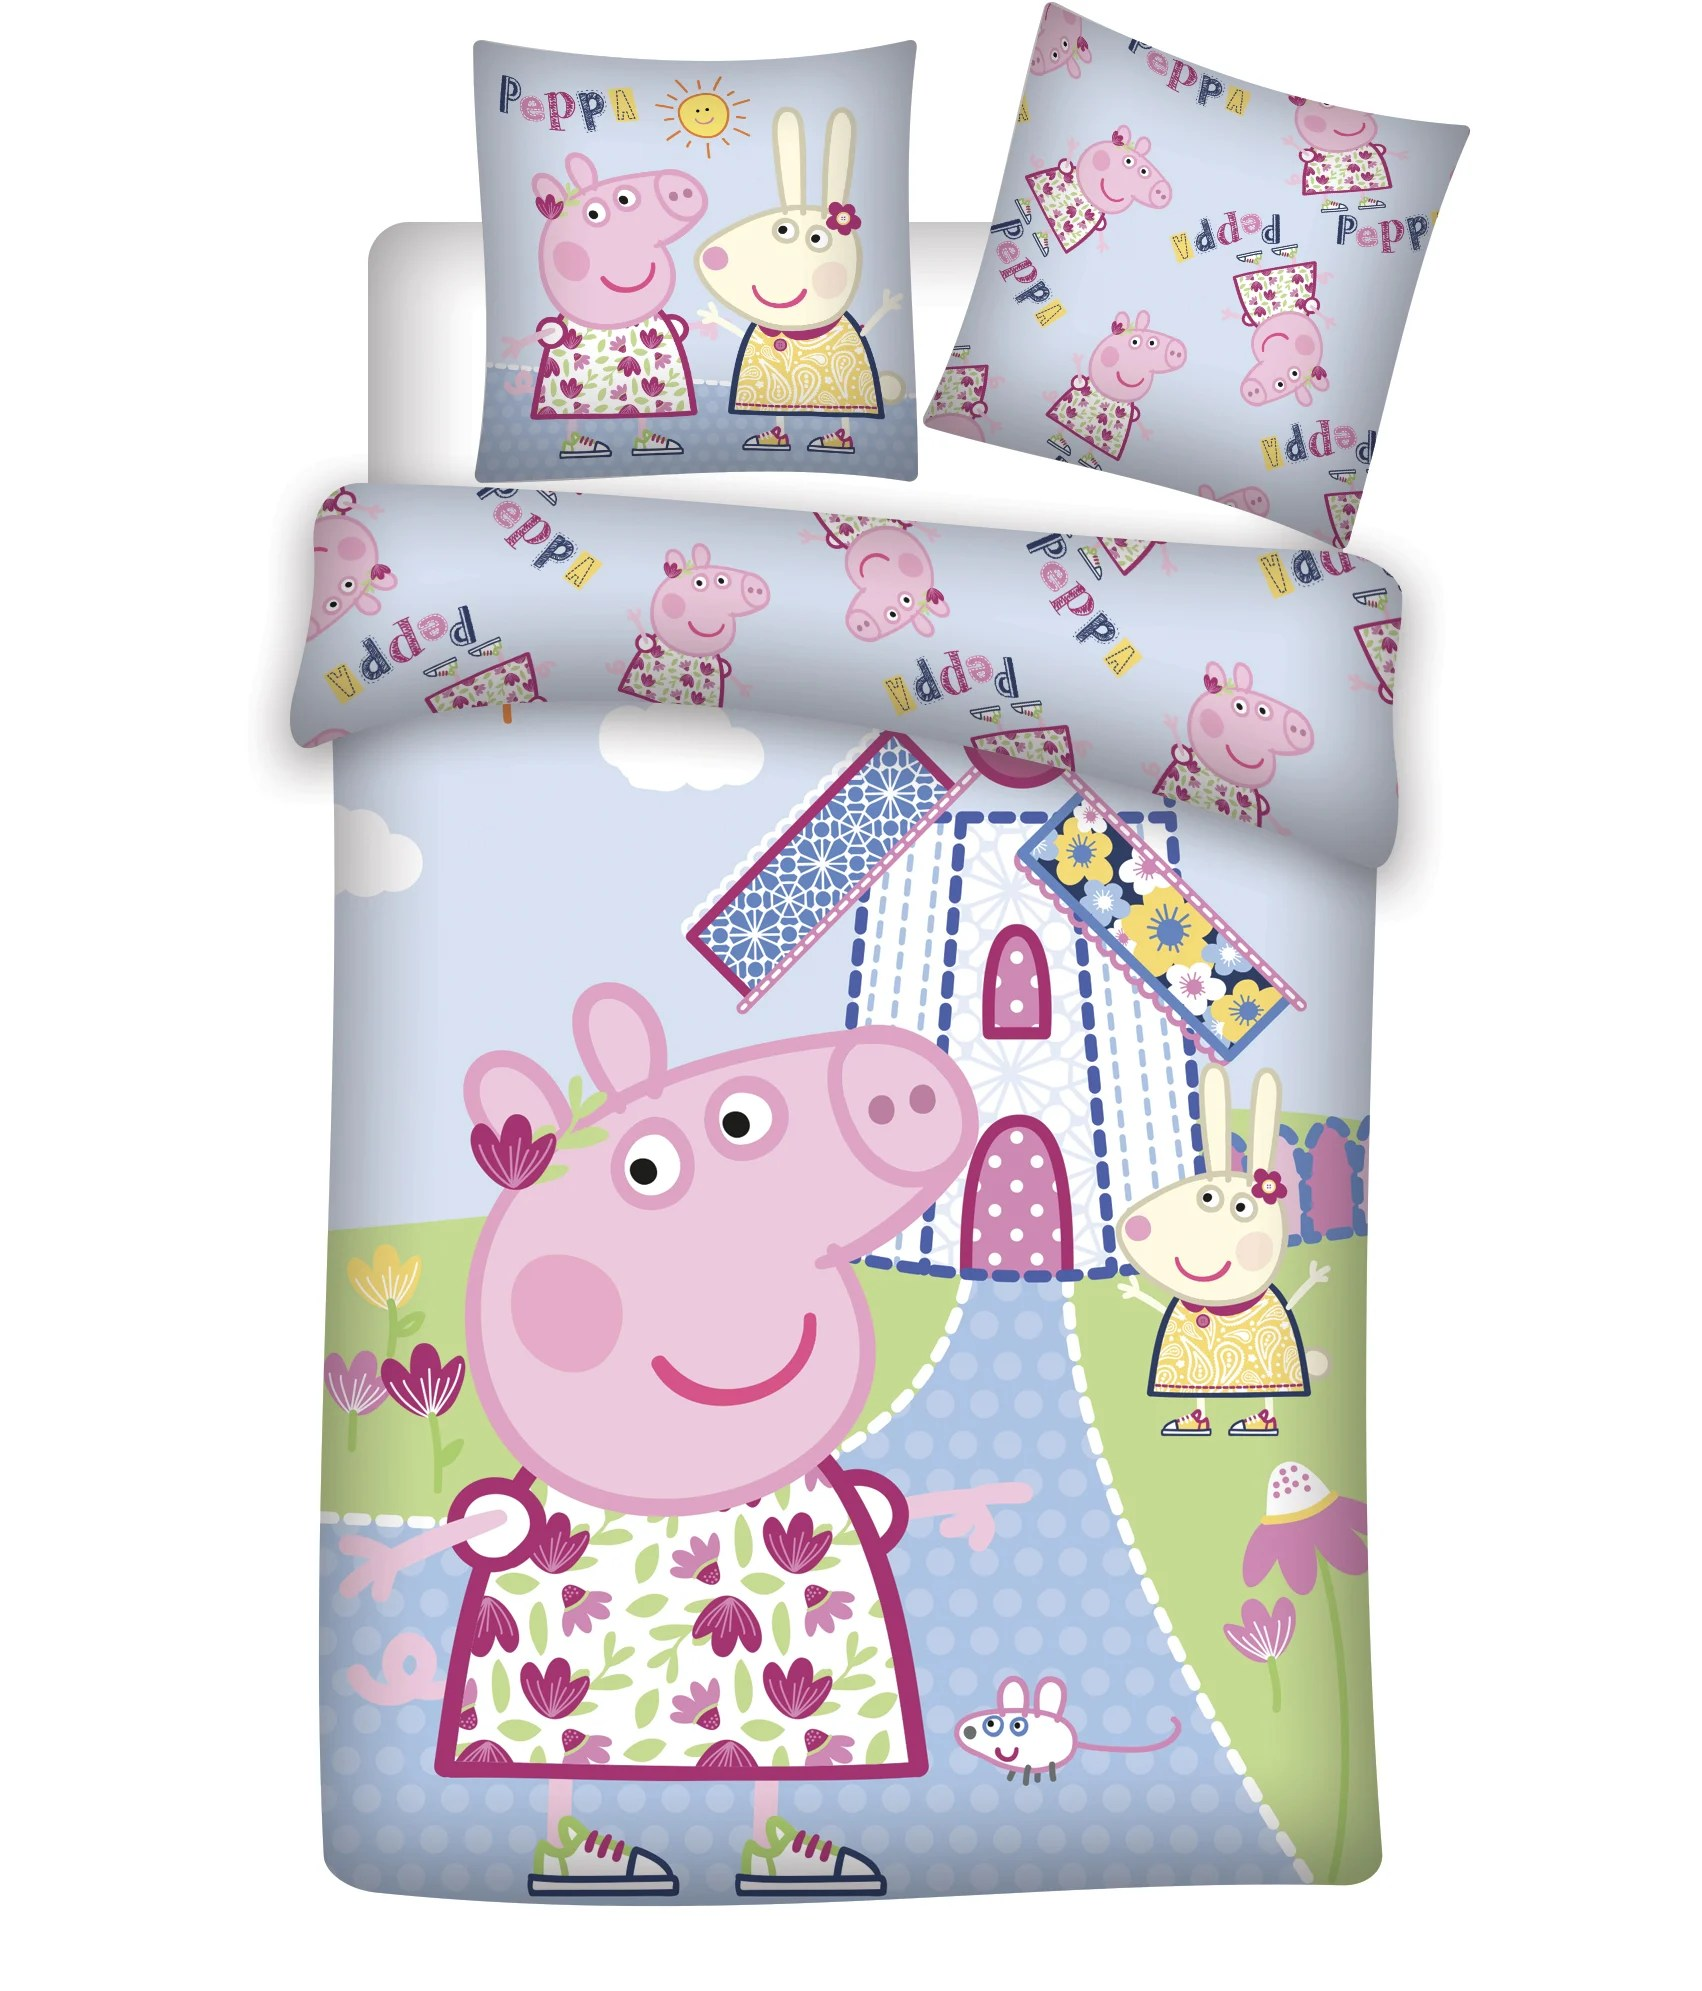 Kaufe Bed Linen Junior Size 100 X 140 Cm Peppa Pig 1000382